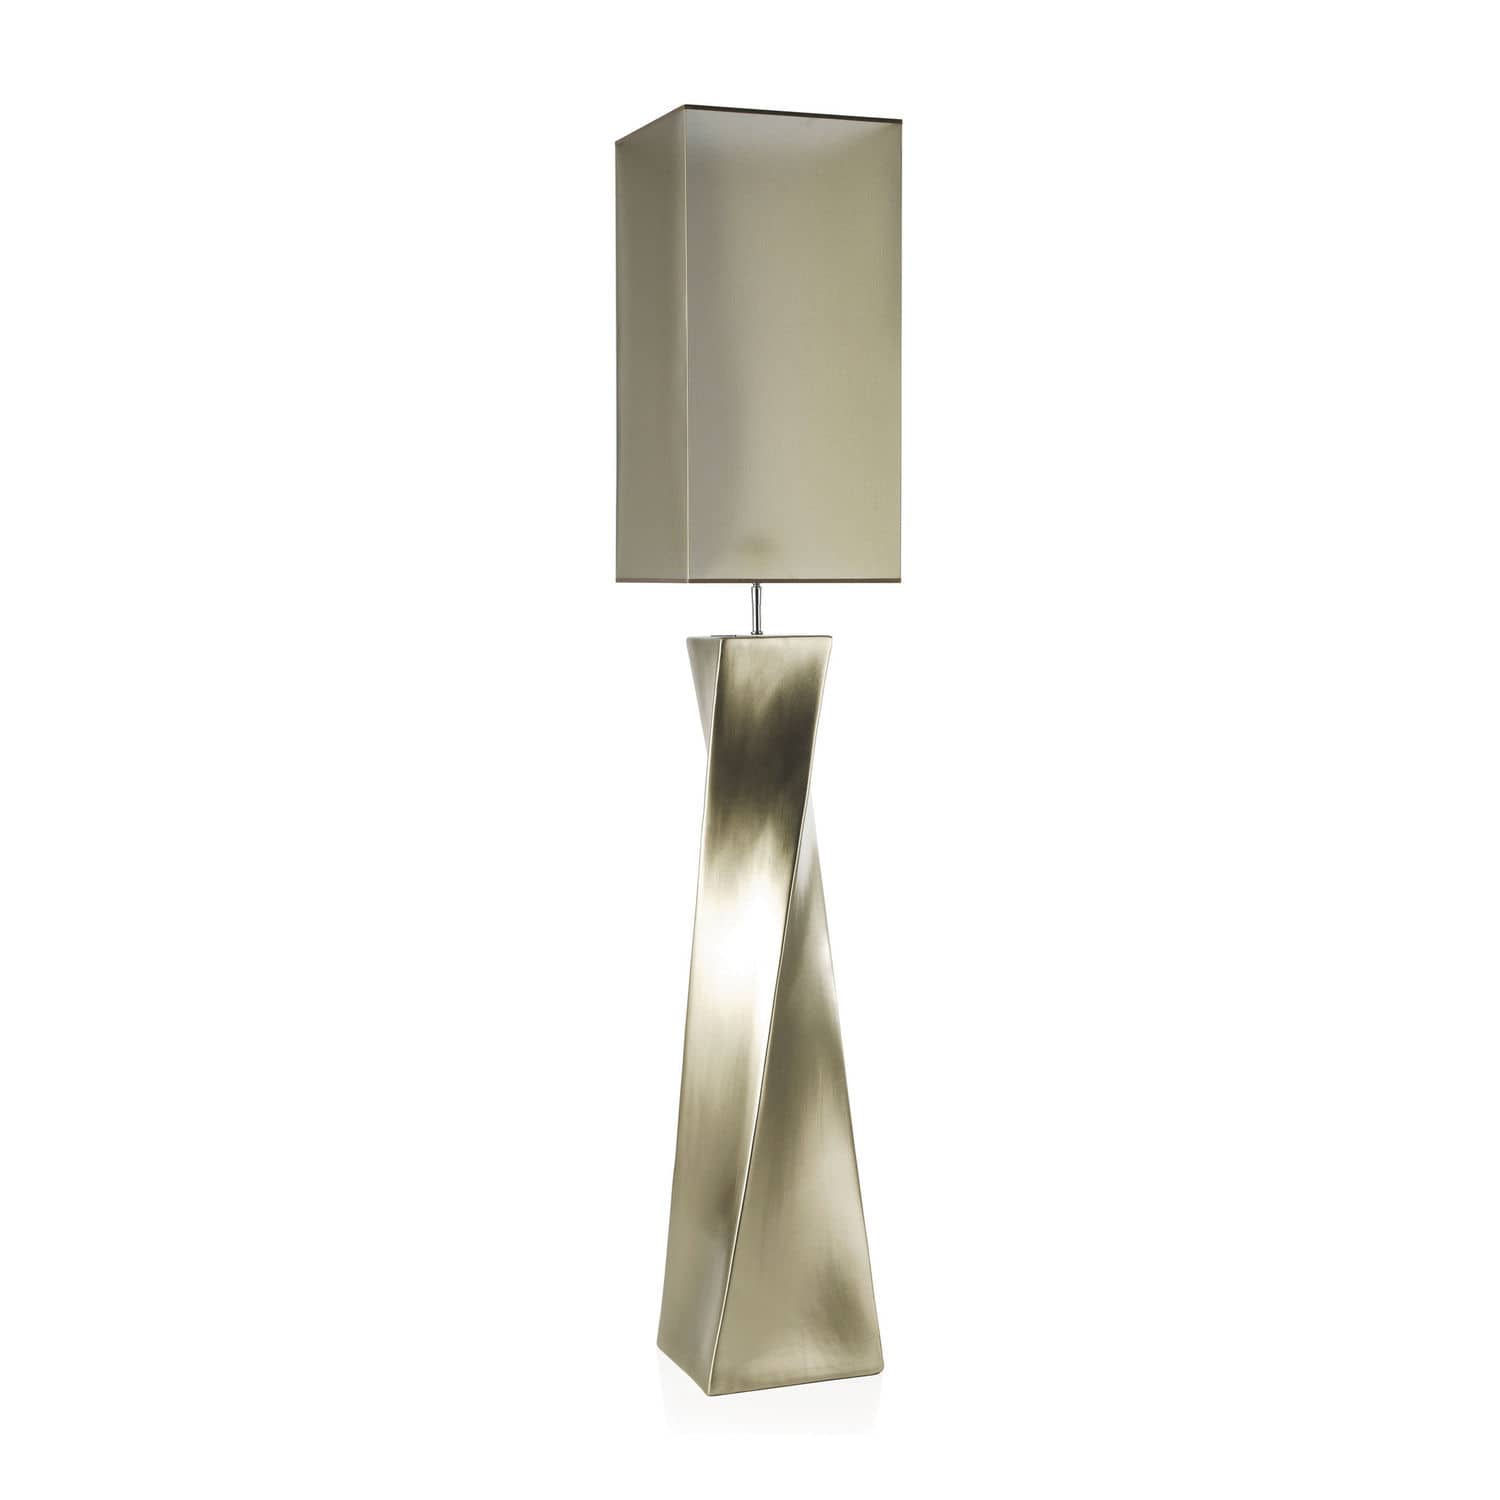 floorstanding lamp  contemporary  ceramic  home twiss fl  - floorstanding lamp  contemporary  ceramic  home twiss fl